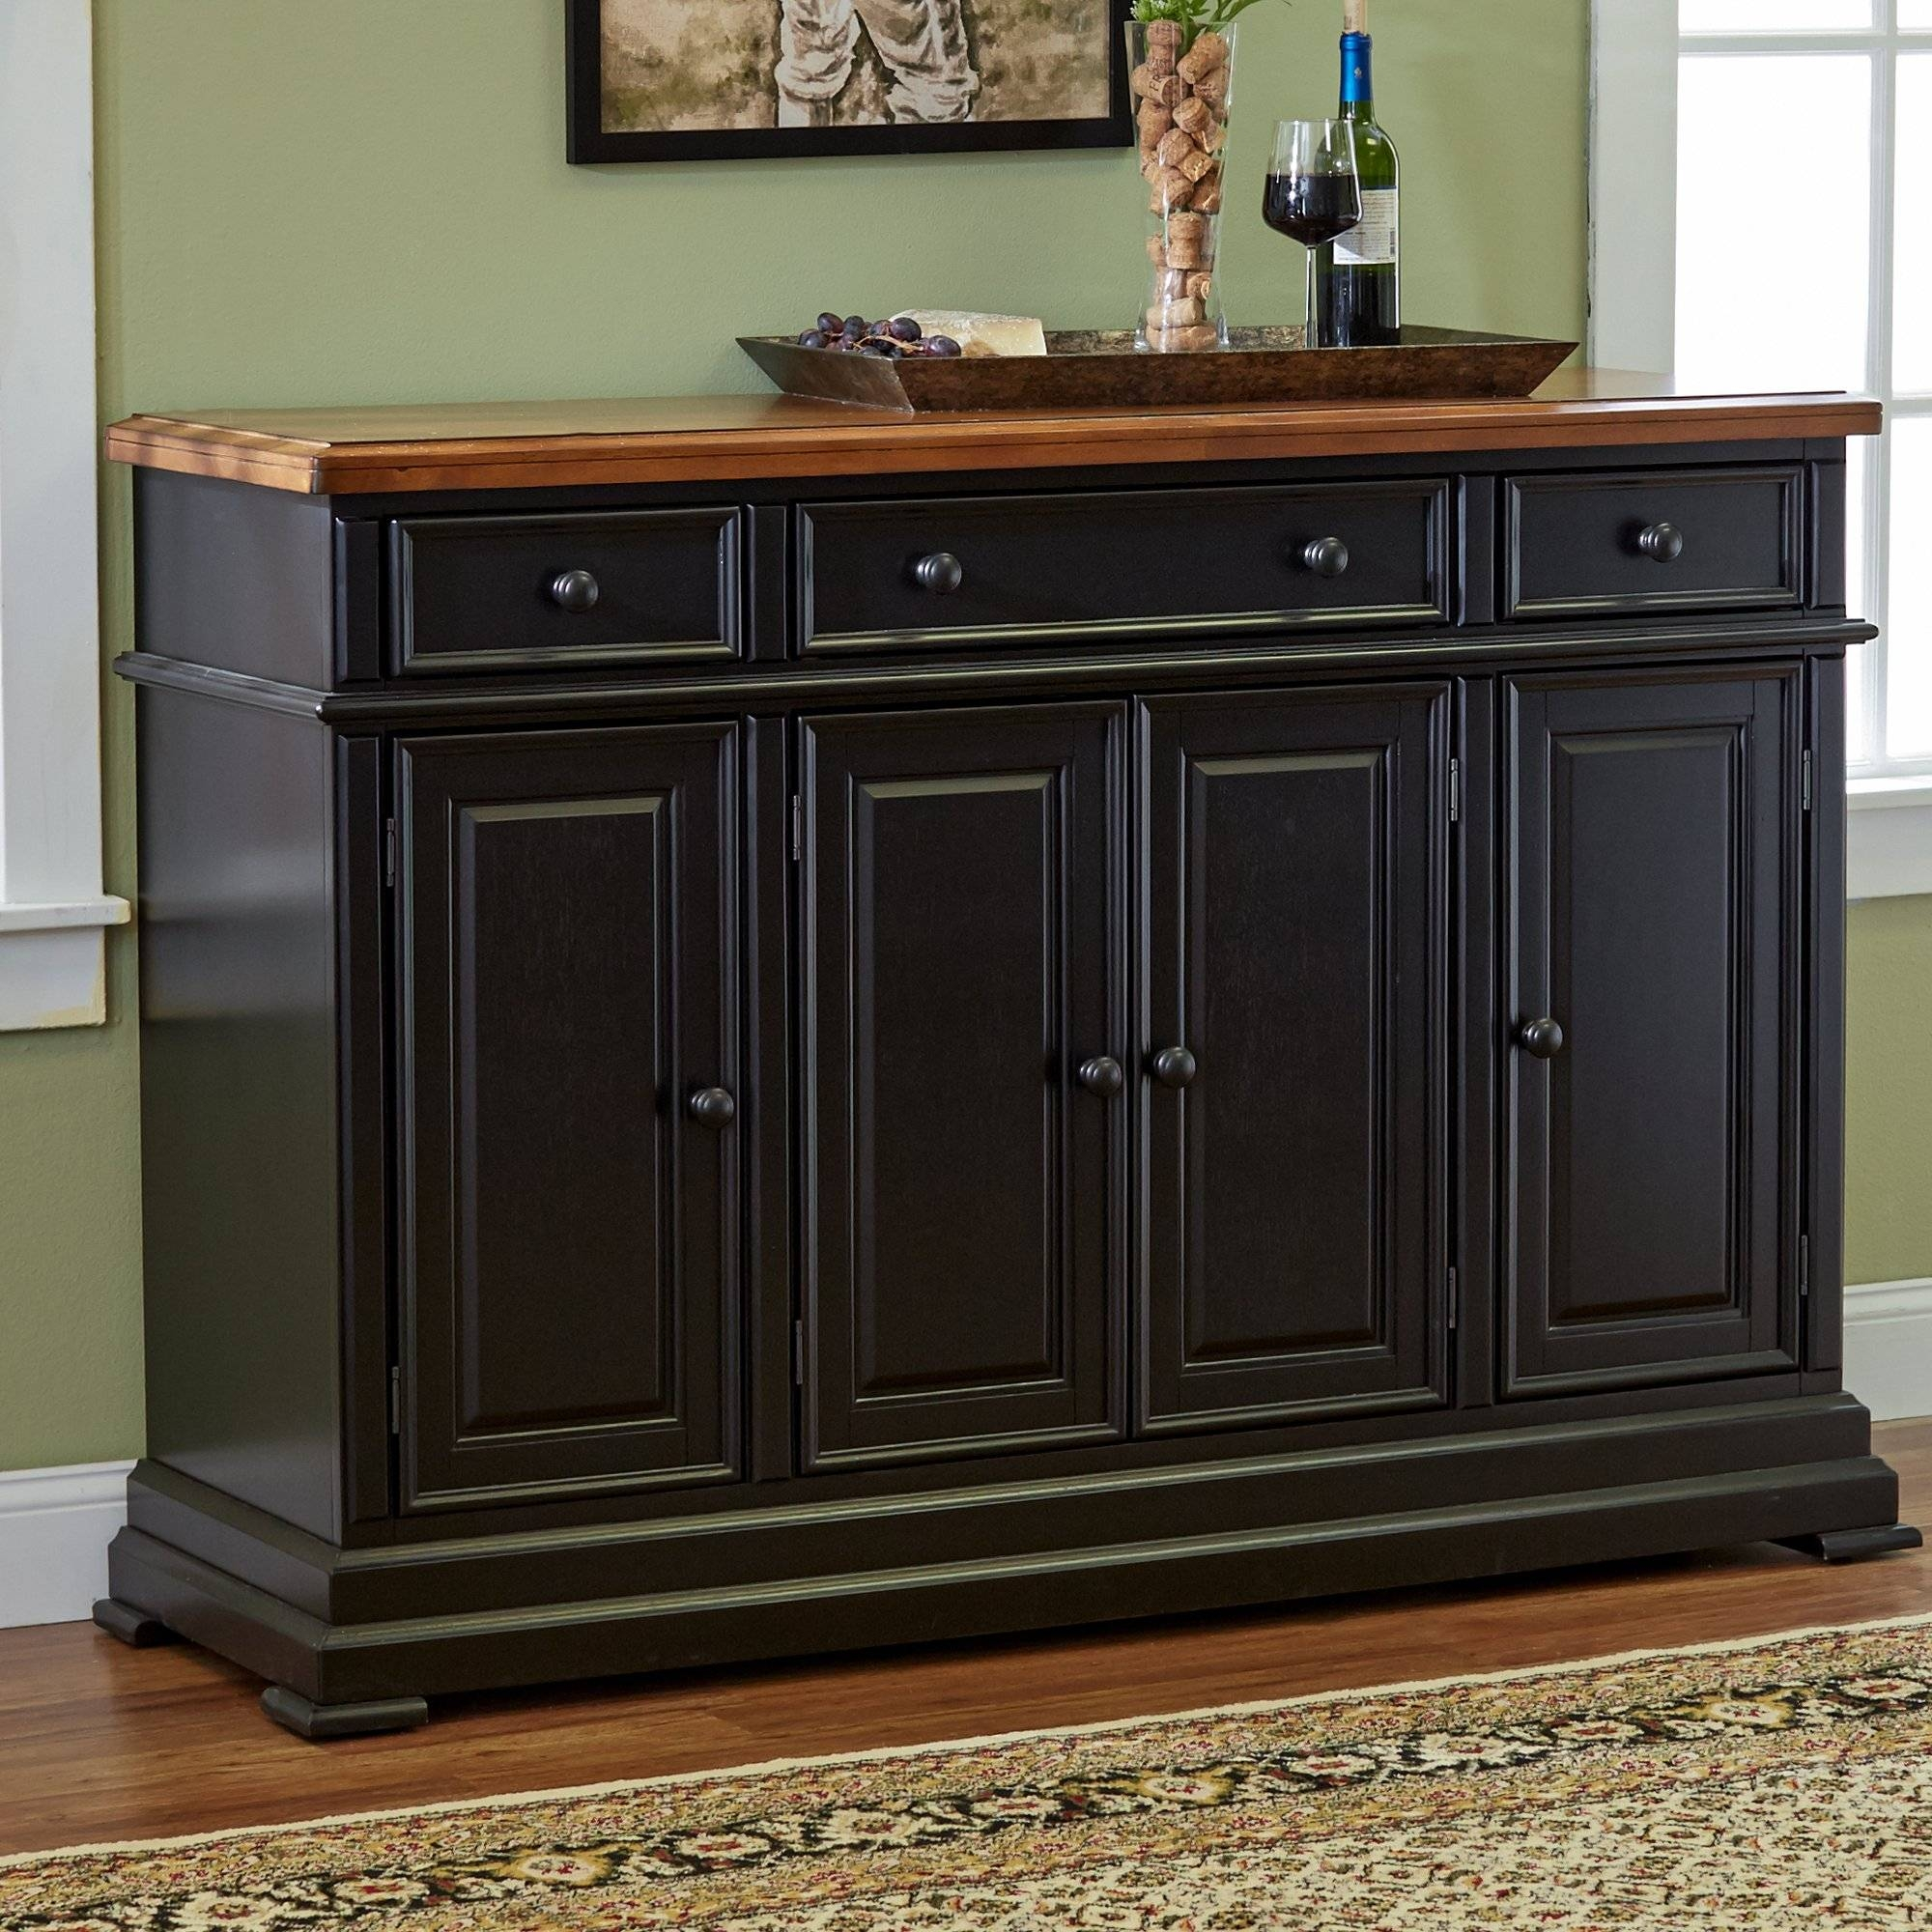 Elegant Sideboard With Hutch - Bjdgjy for Elegant Sideboards (Image 3 of 15)